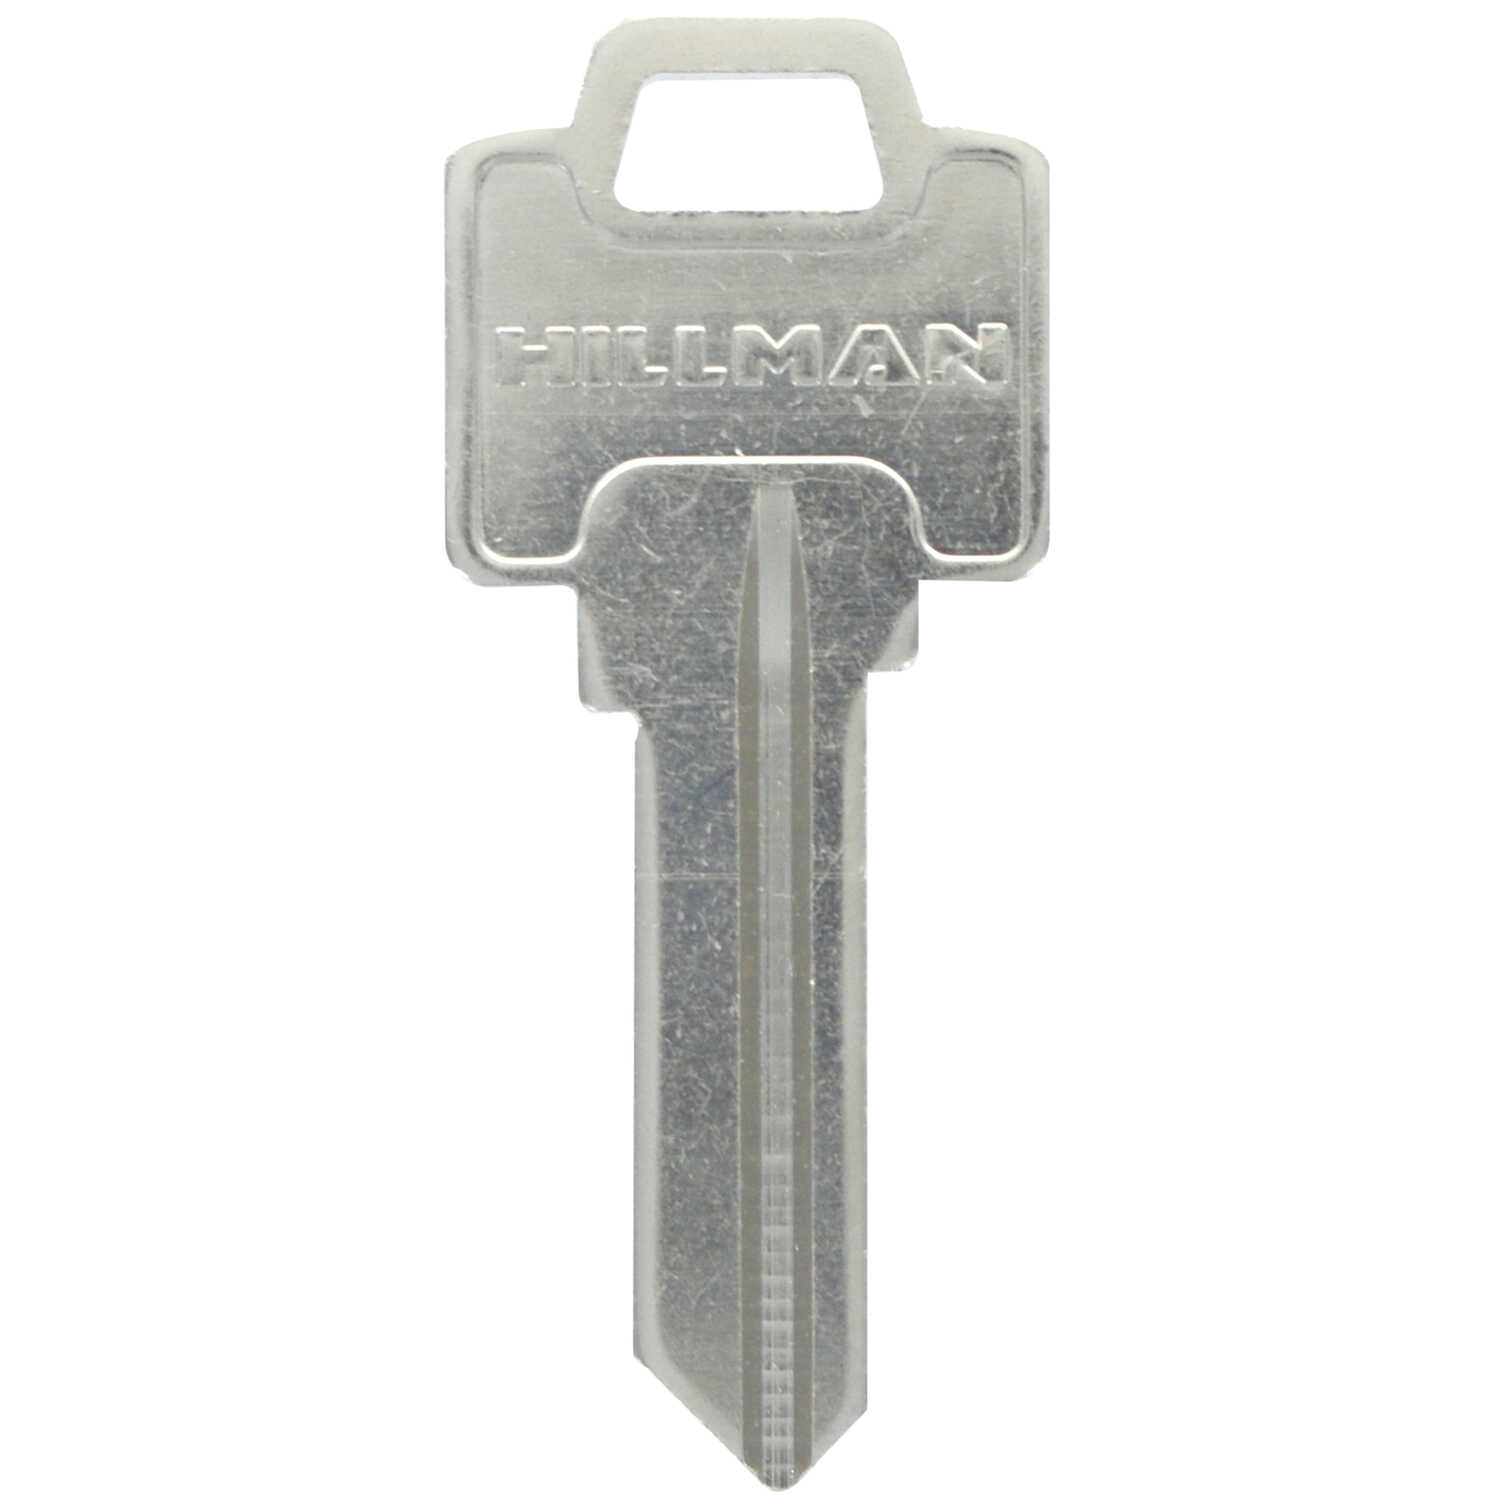 Hillman  KeyKrafter  WR-5  House/Office  Universal Key Blank  Single sided